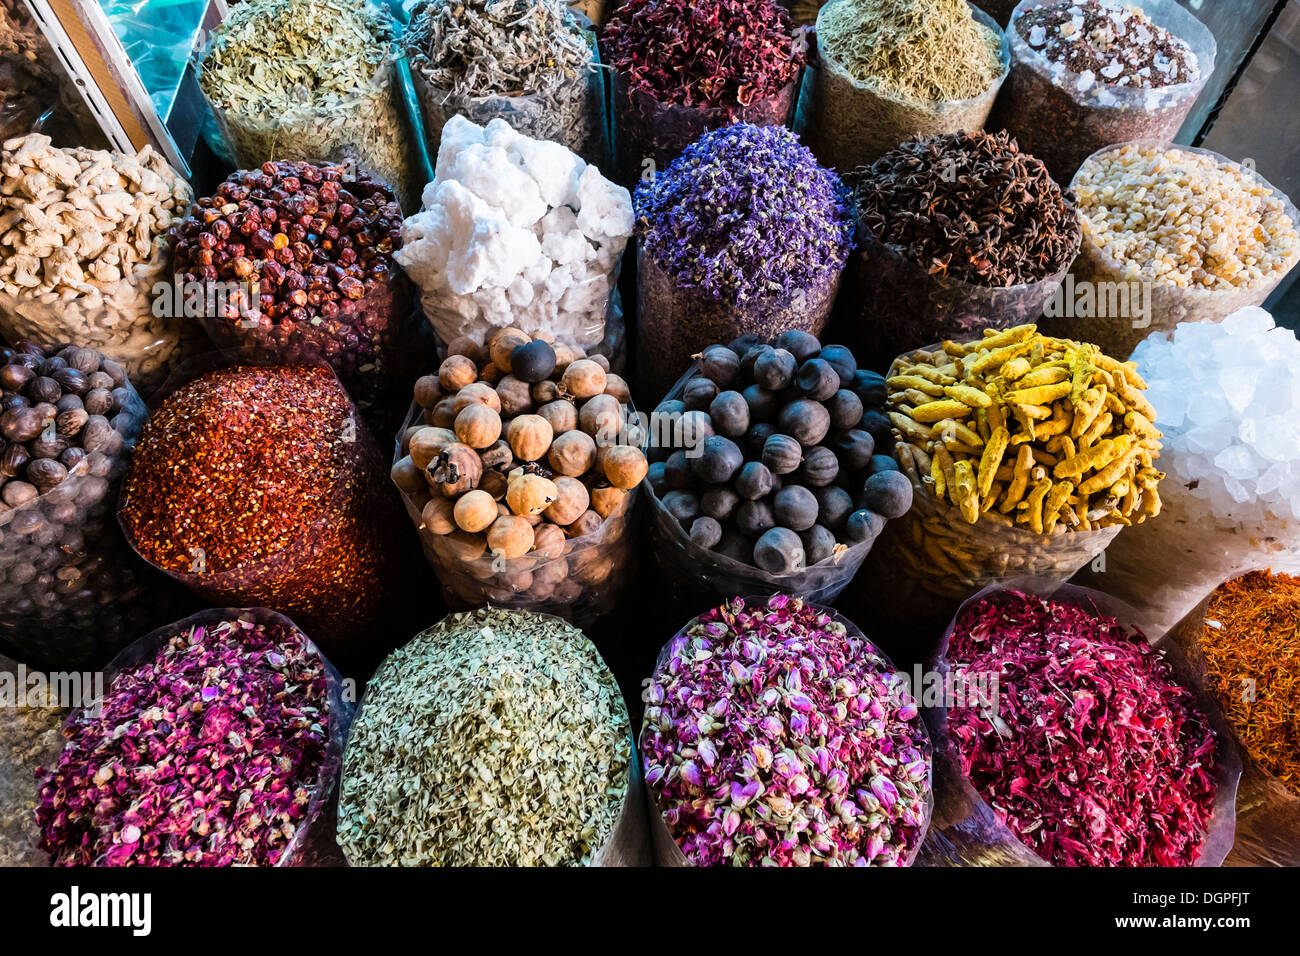 Spices and herbs for sale at Spice Souk in Deira Dubai United Arab Emirates Stock Photo